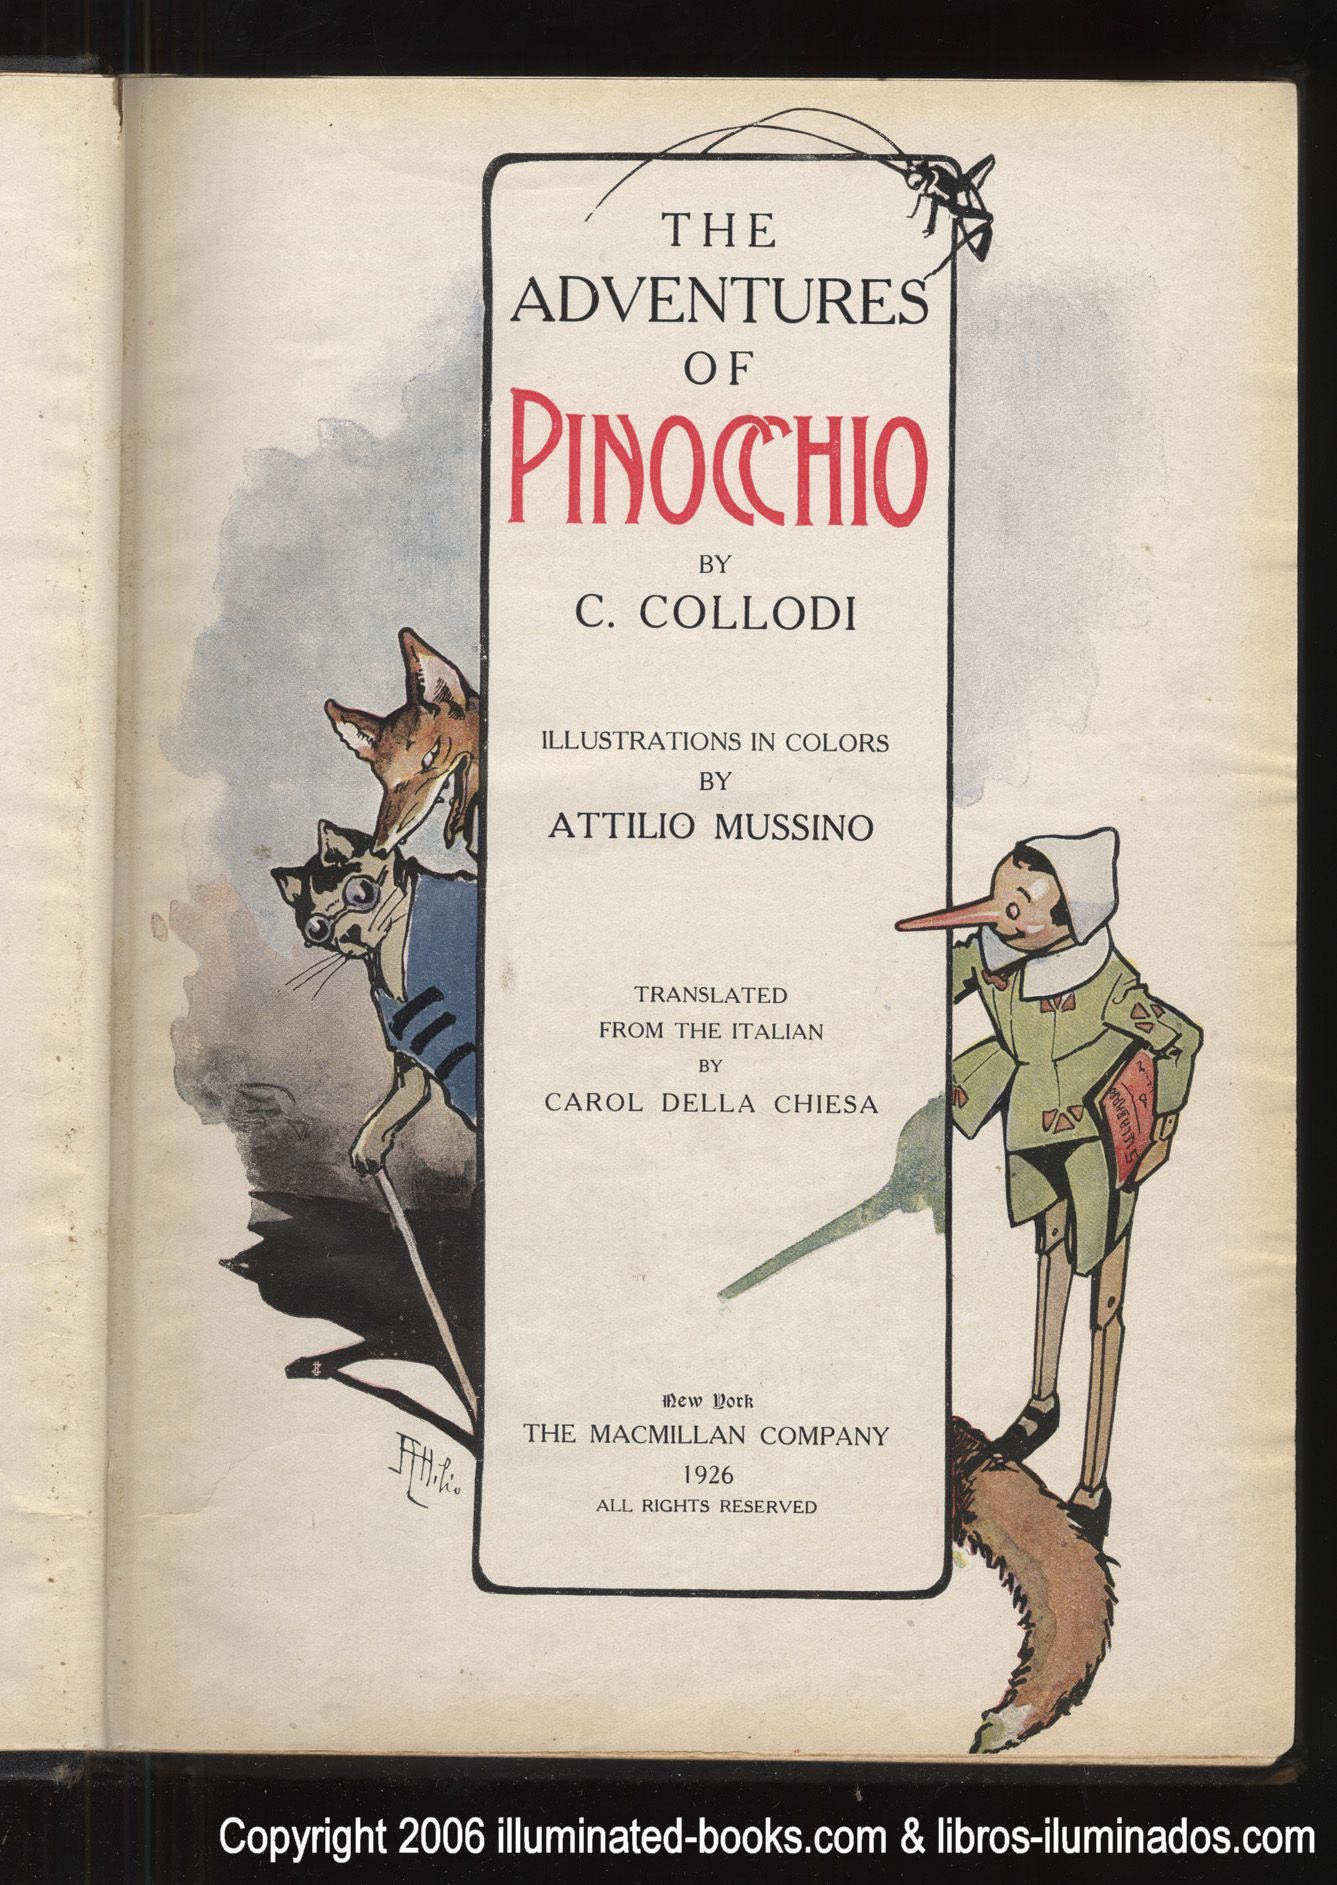 Who wrote Pinocchio Childrens fairy tale or talented hoax